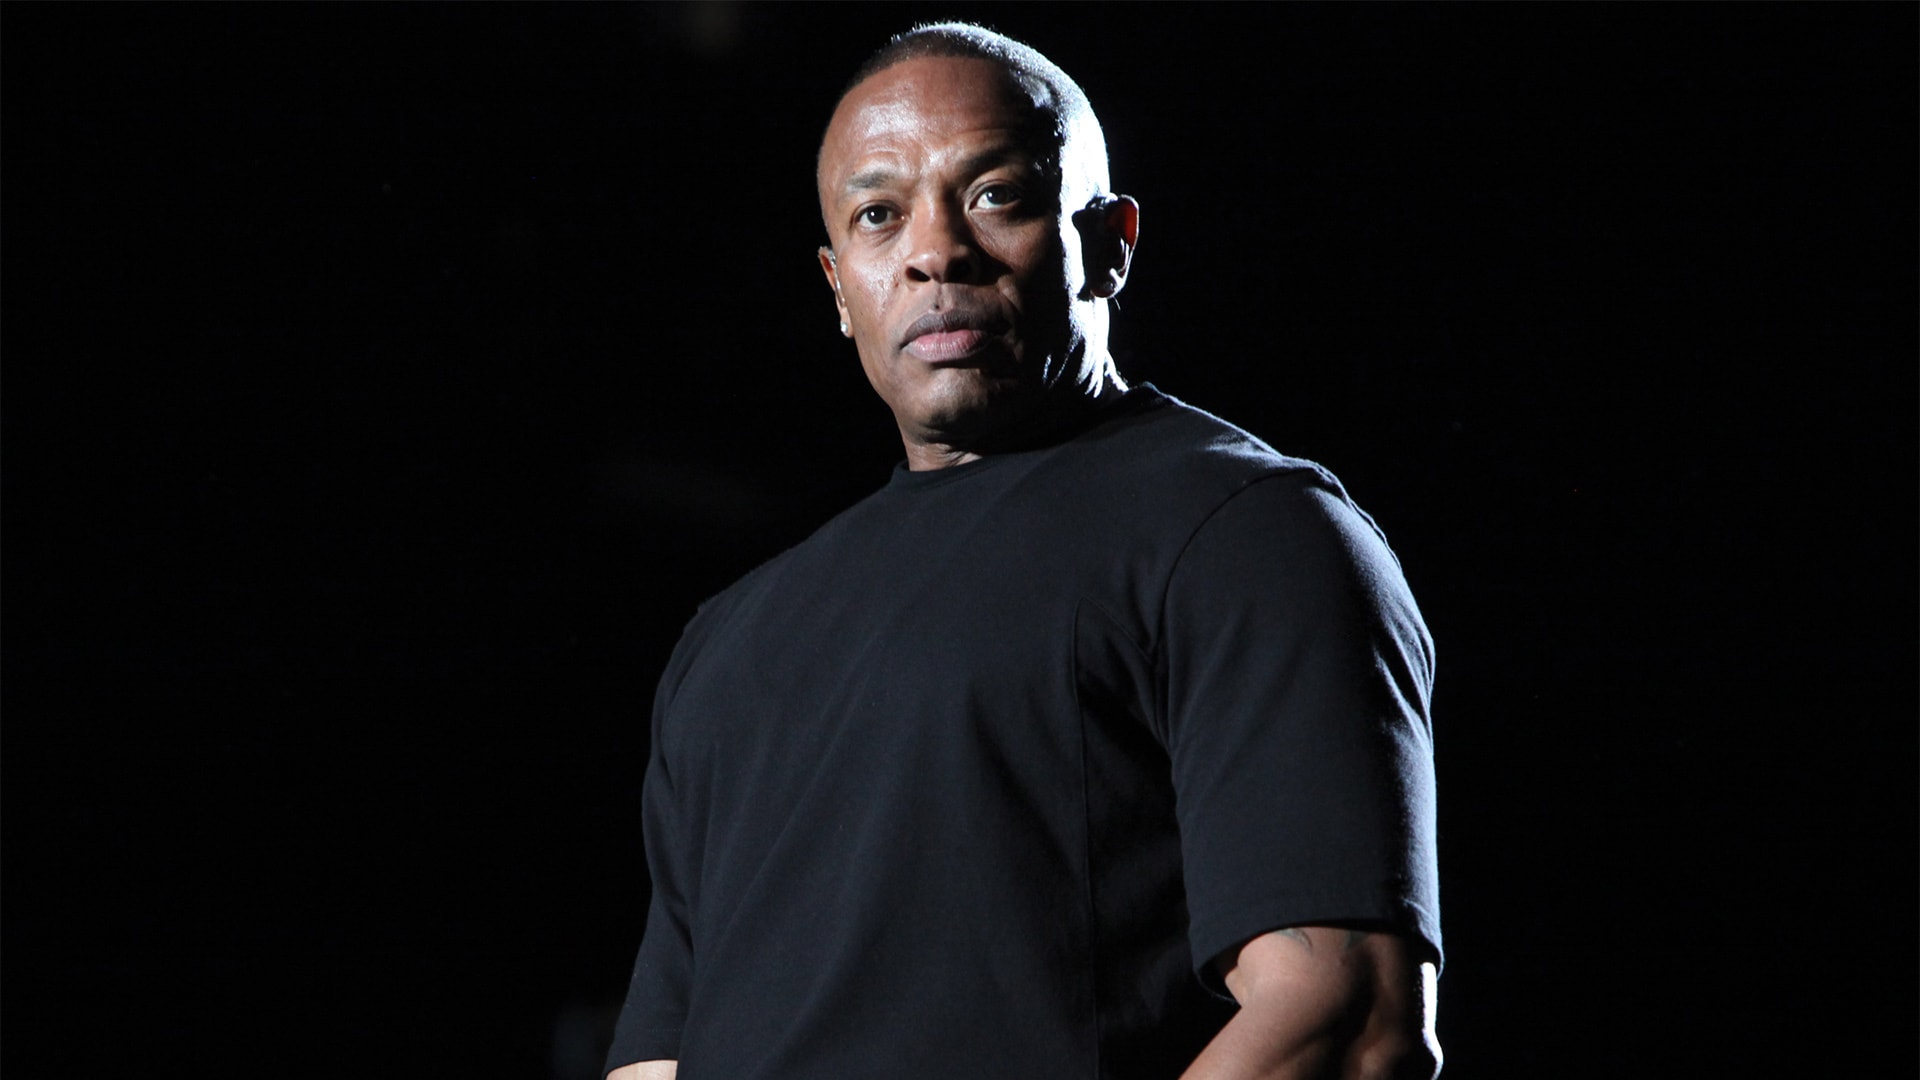 Dr. Dre Background